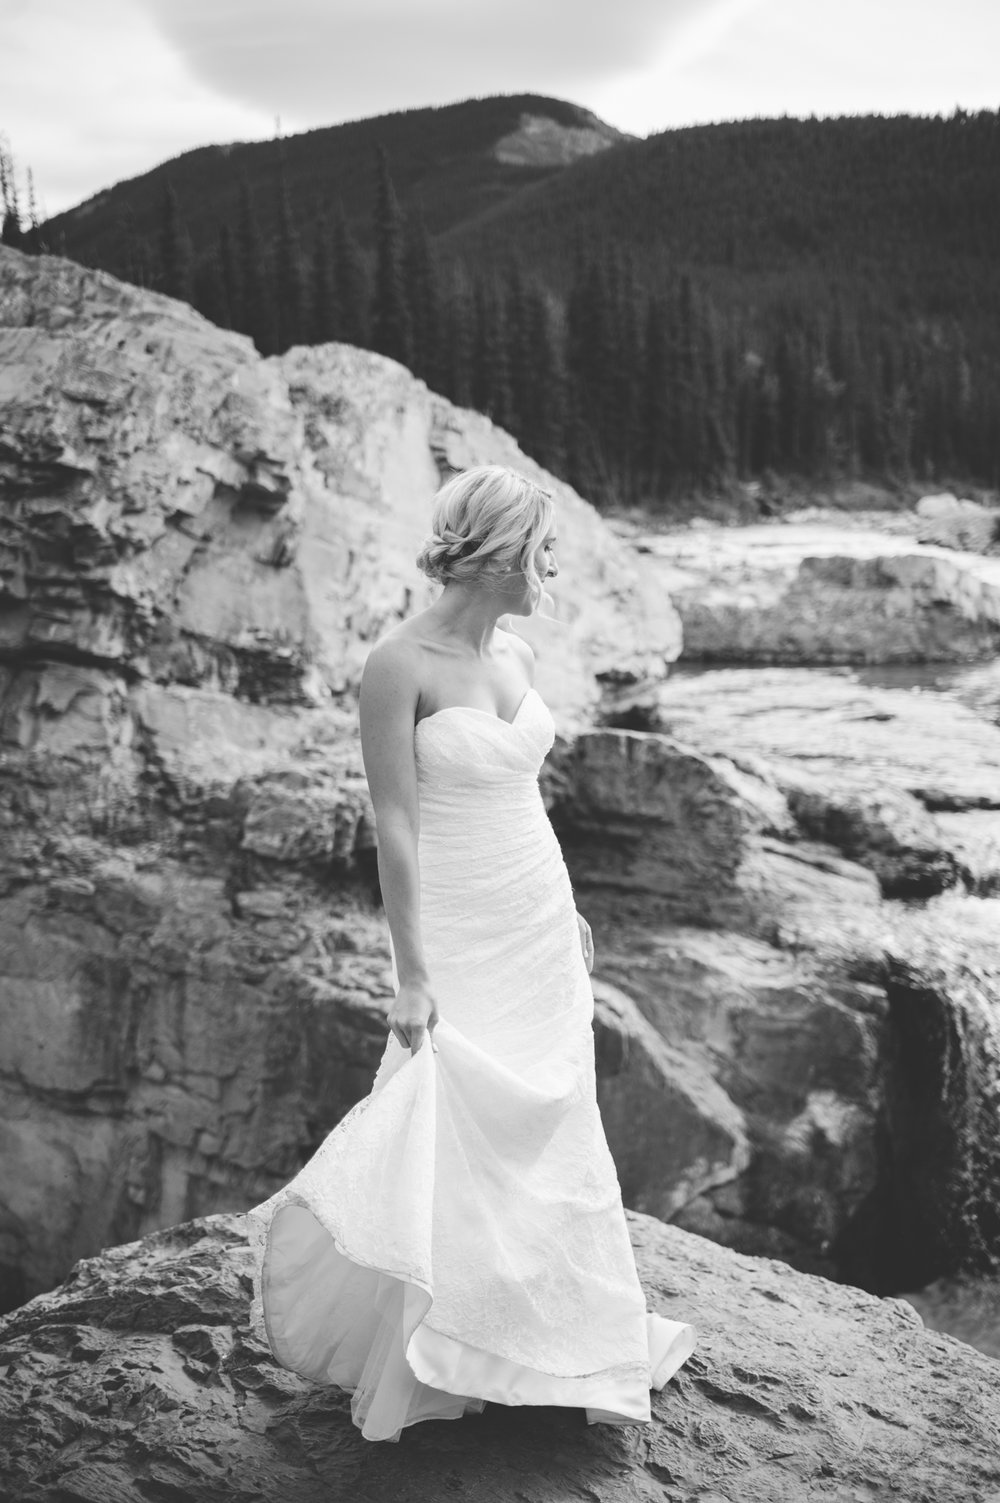 Rocky Mountain Banff Calgary Alberta Wedding-Jessika Hunter Photo-69.JPG